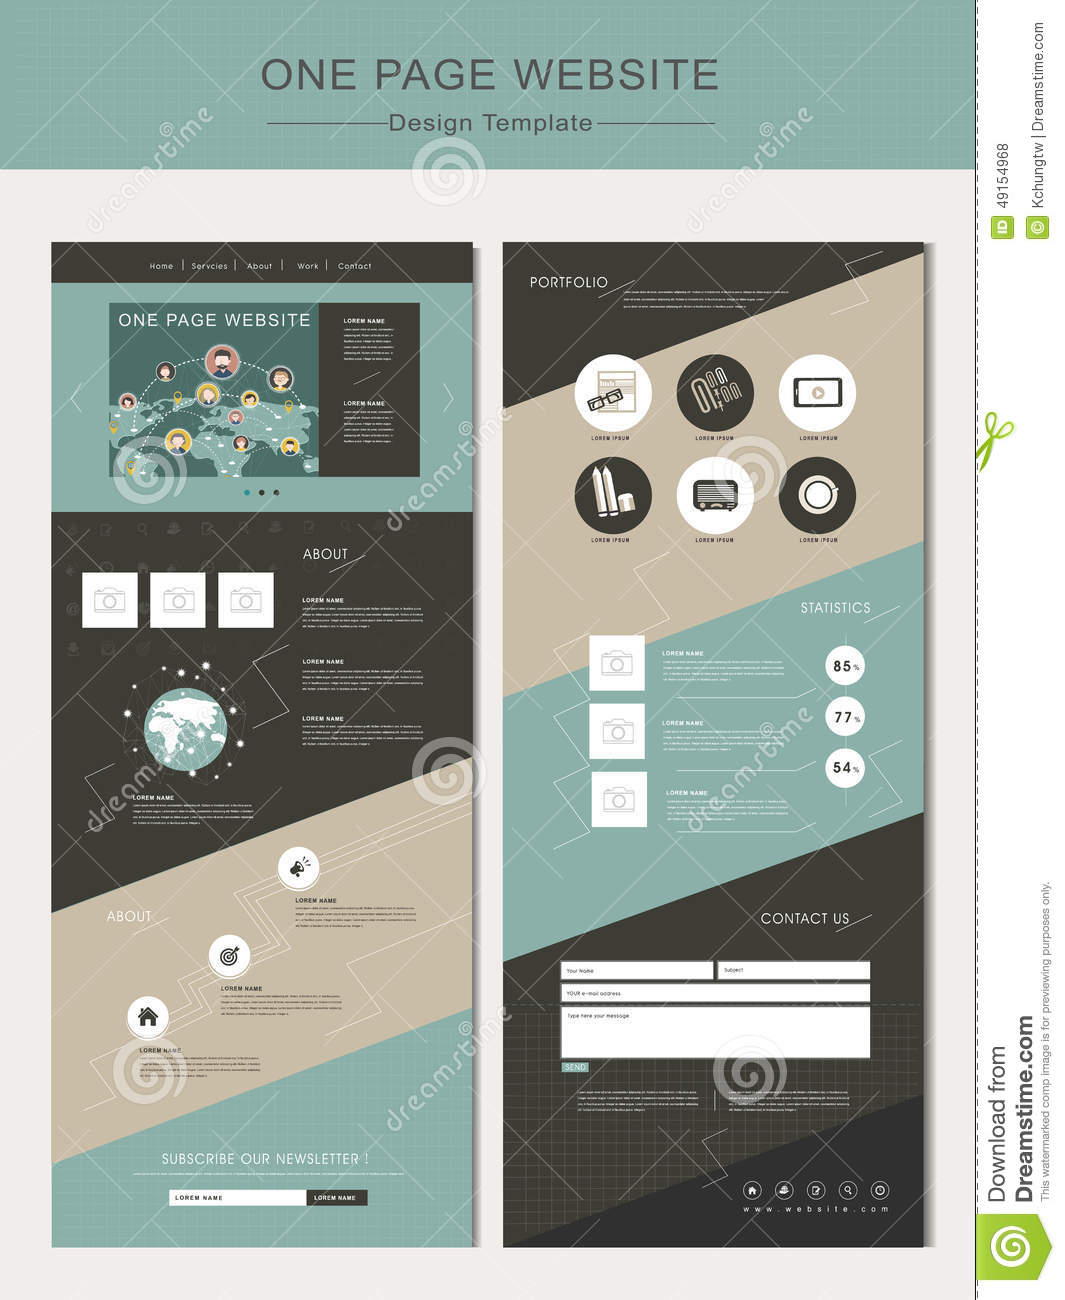 One Page Website Template: Geometric One Page Website Design Template Stock Vector